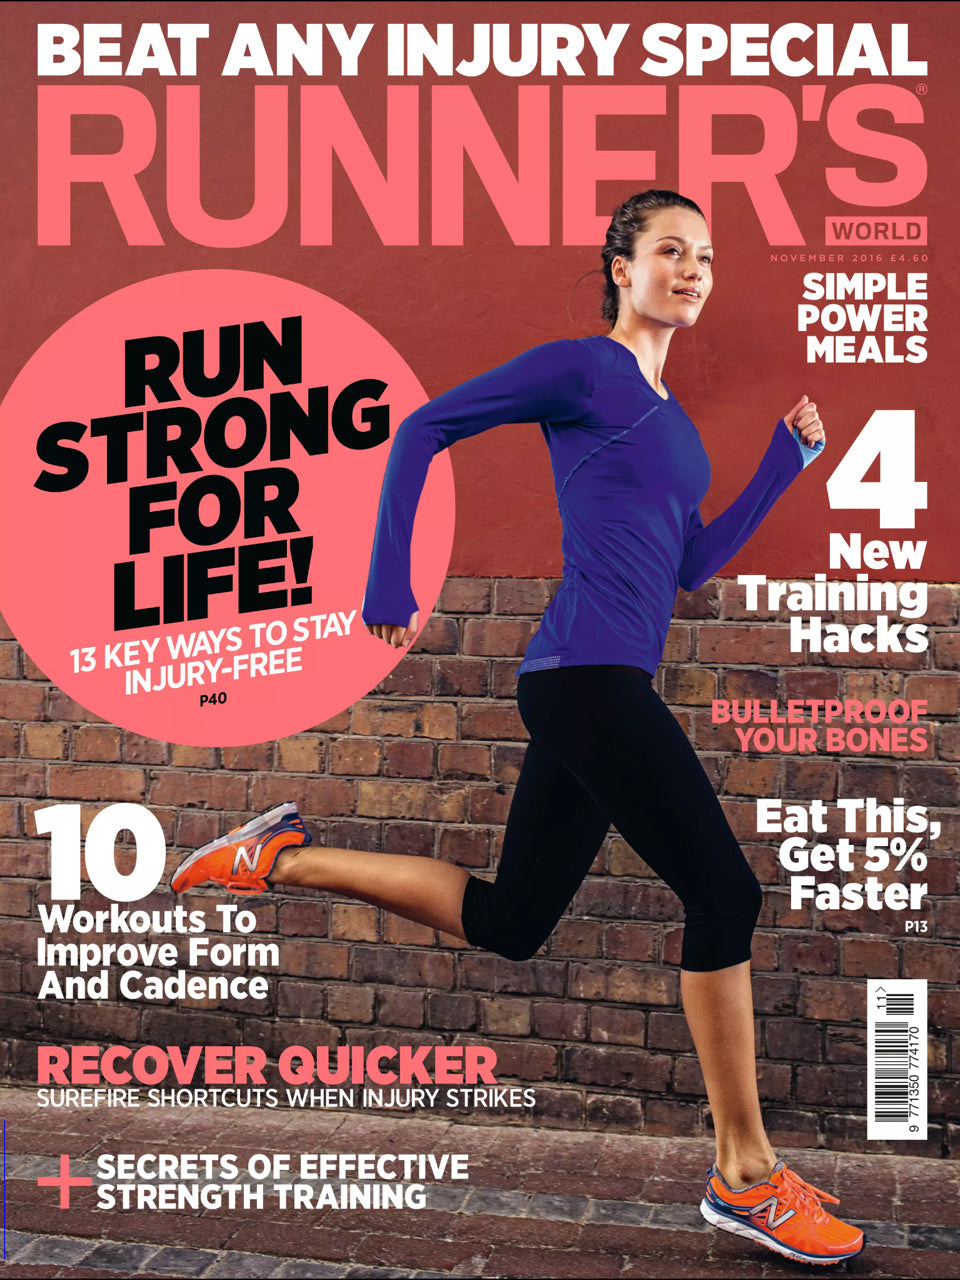 Runners World November 2016